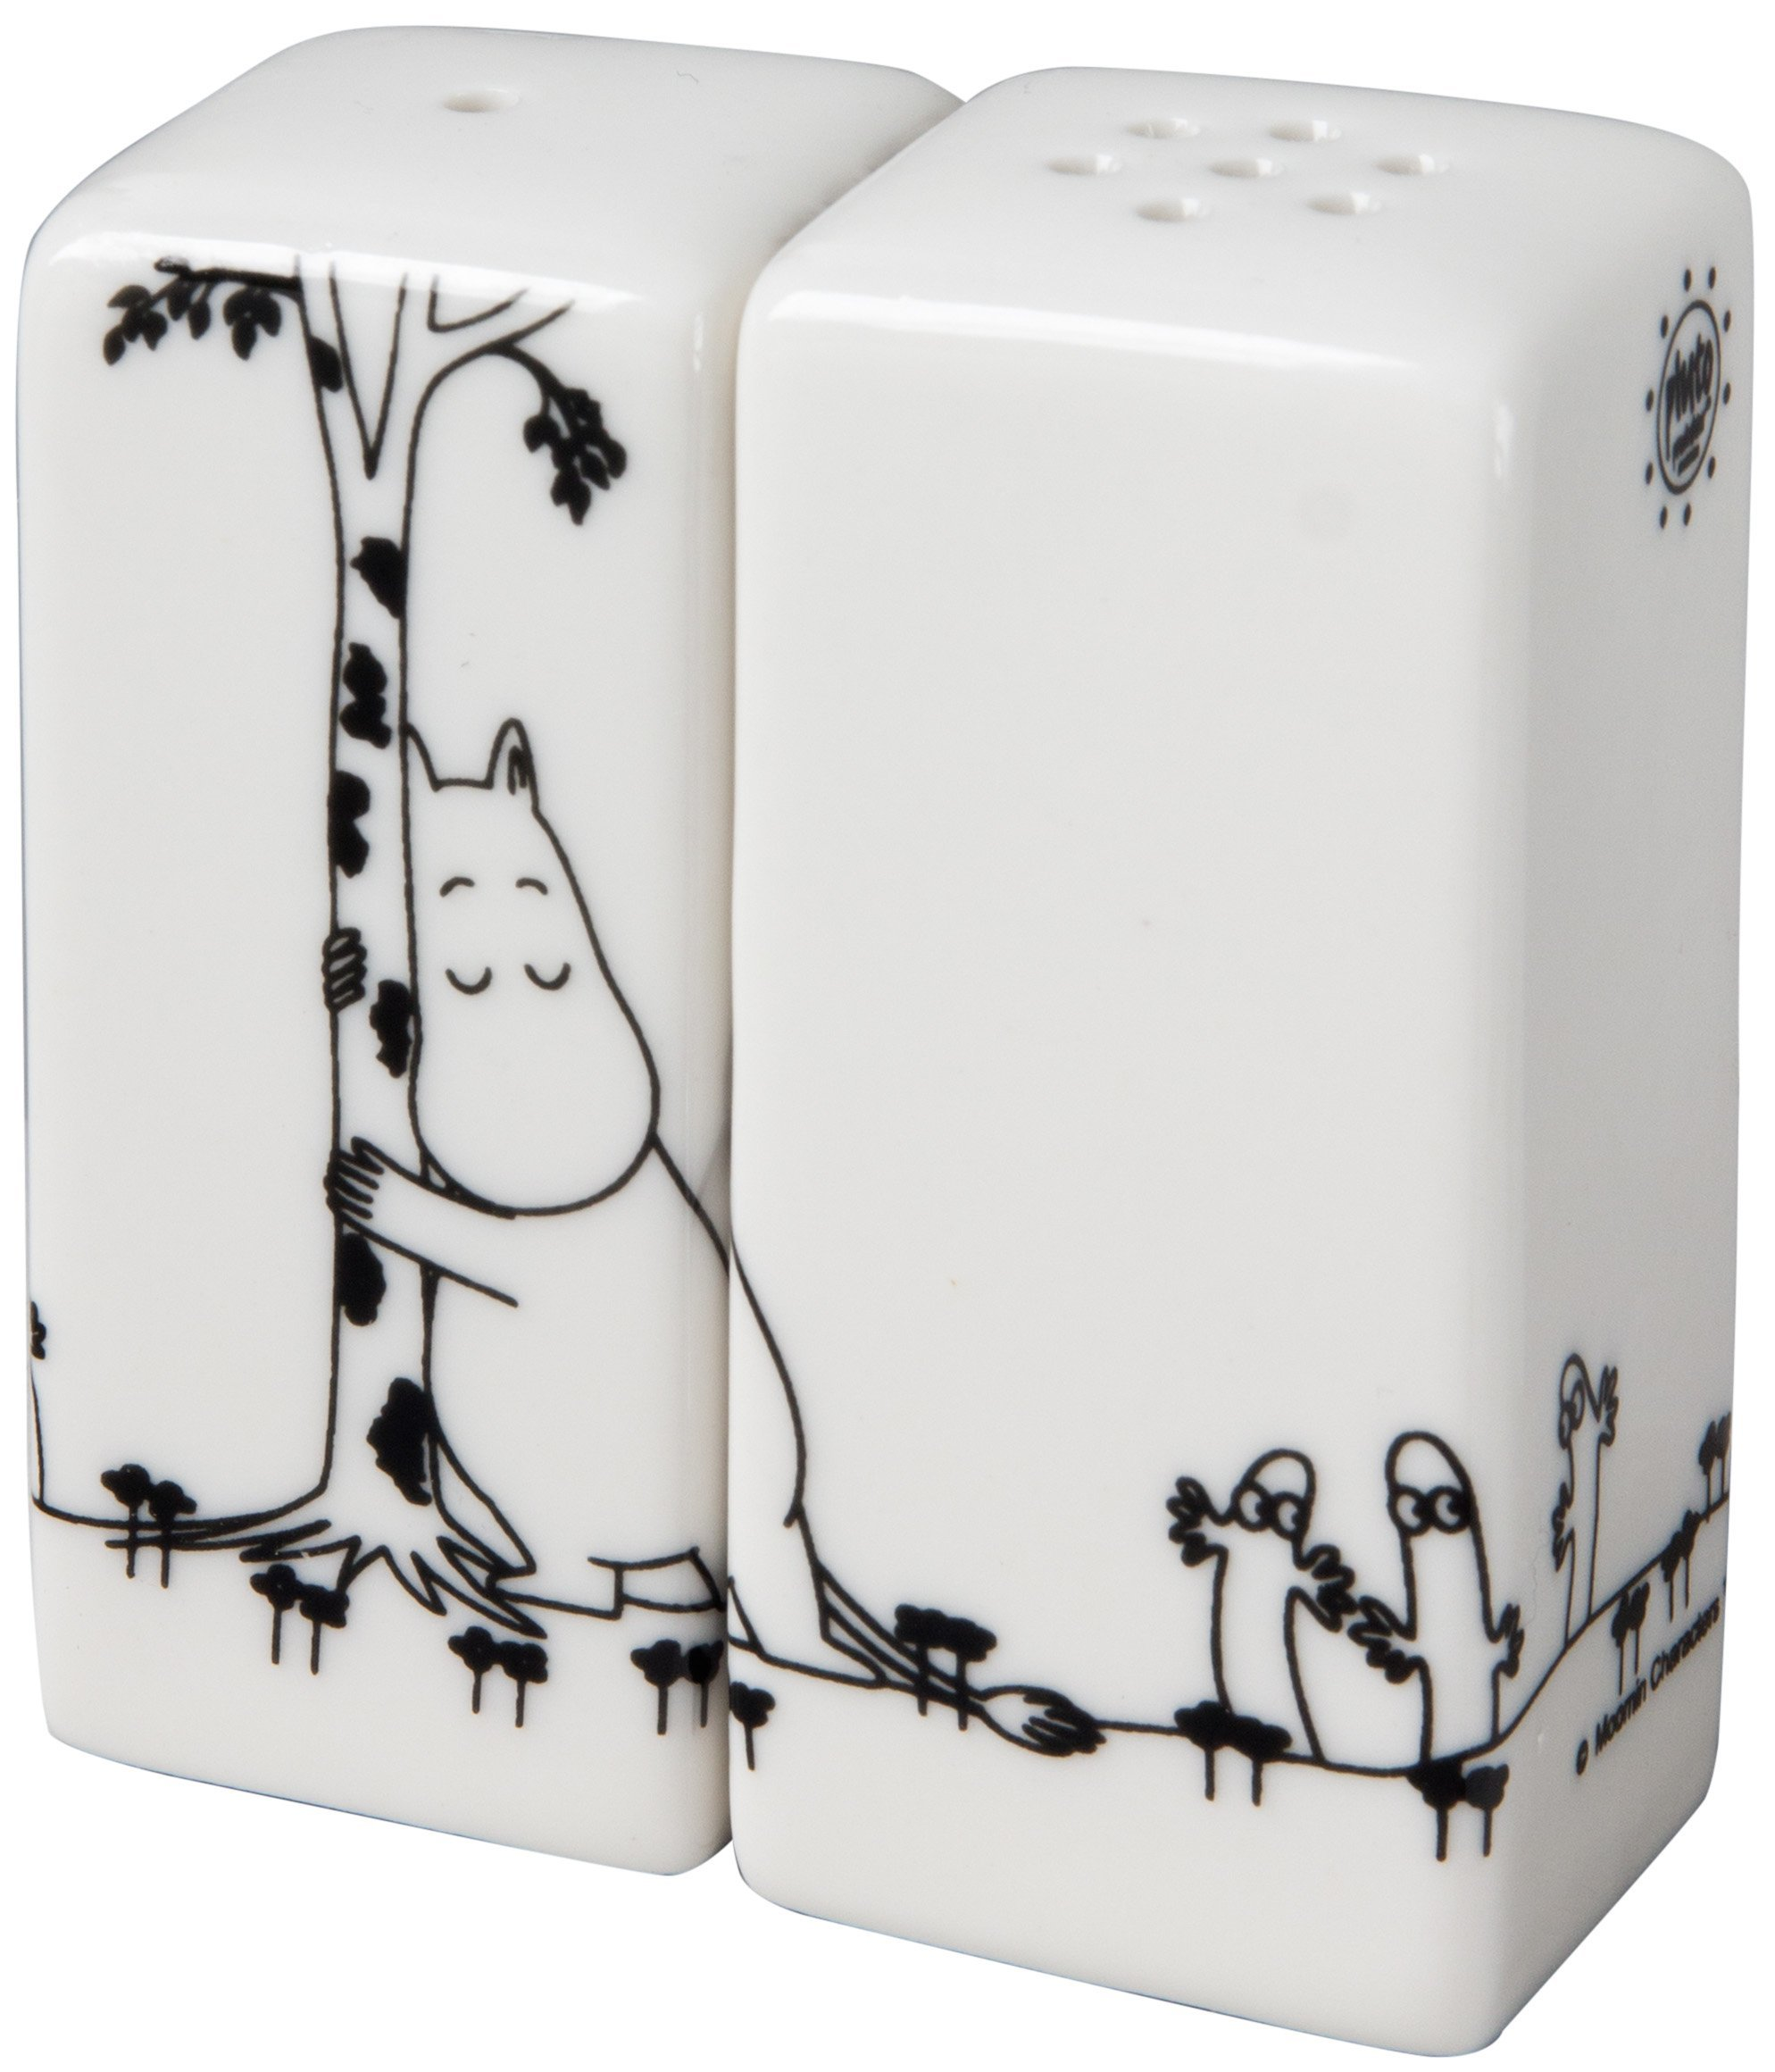 Pluto Salt & Pepper Shakers Moomin